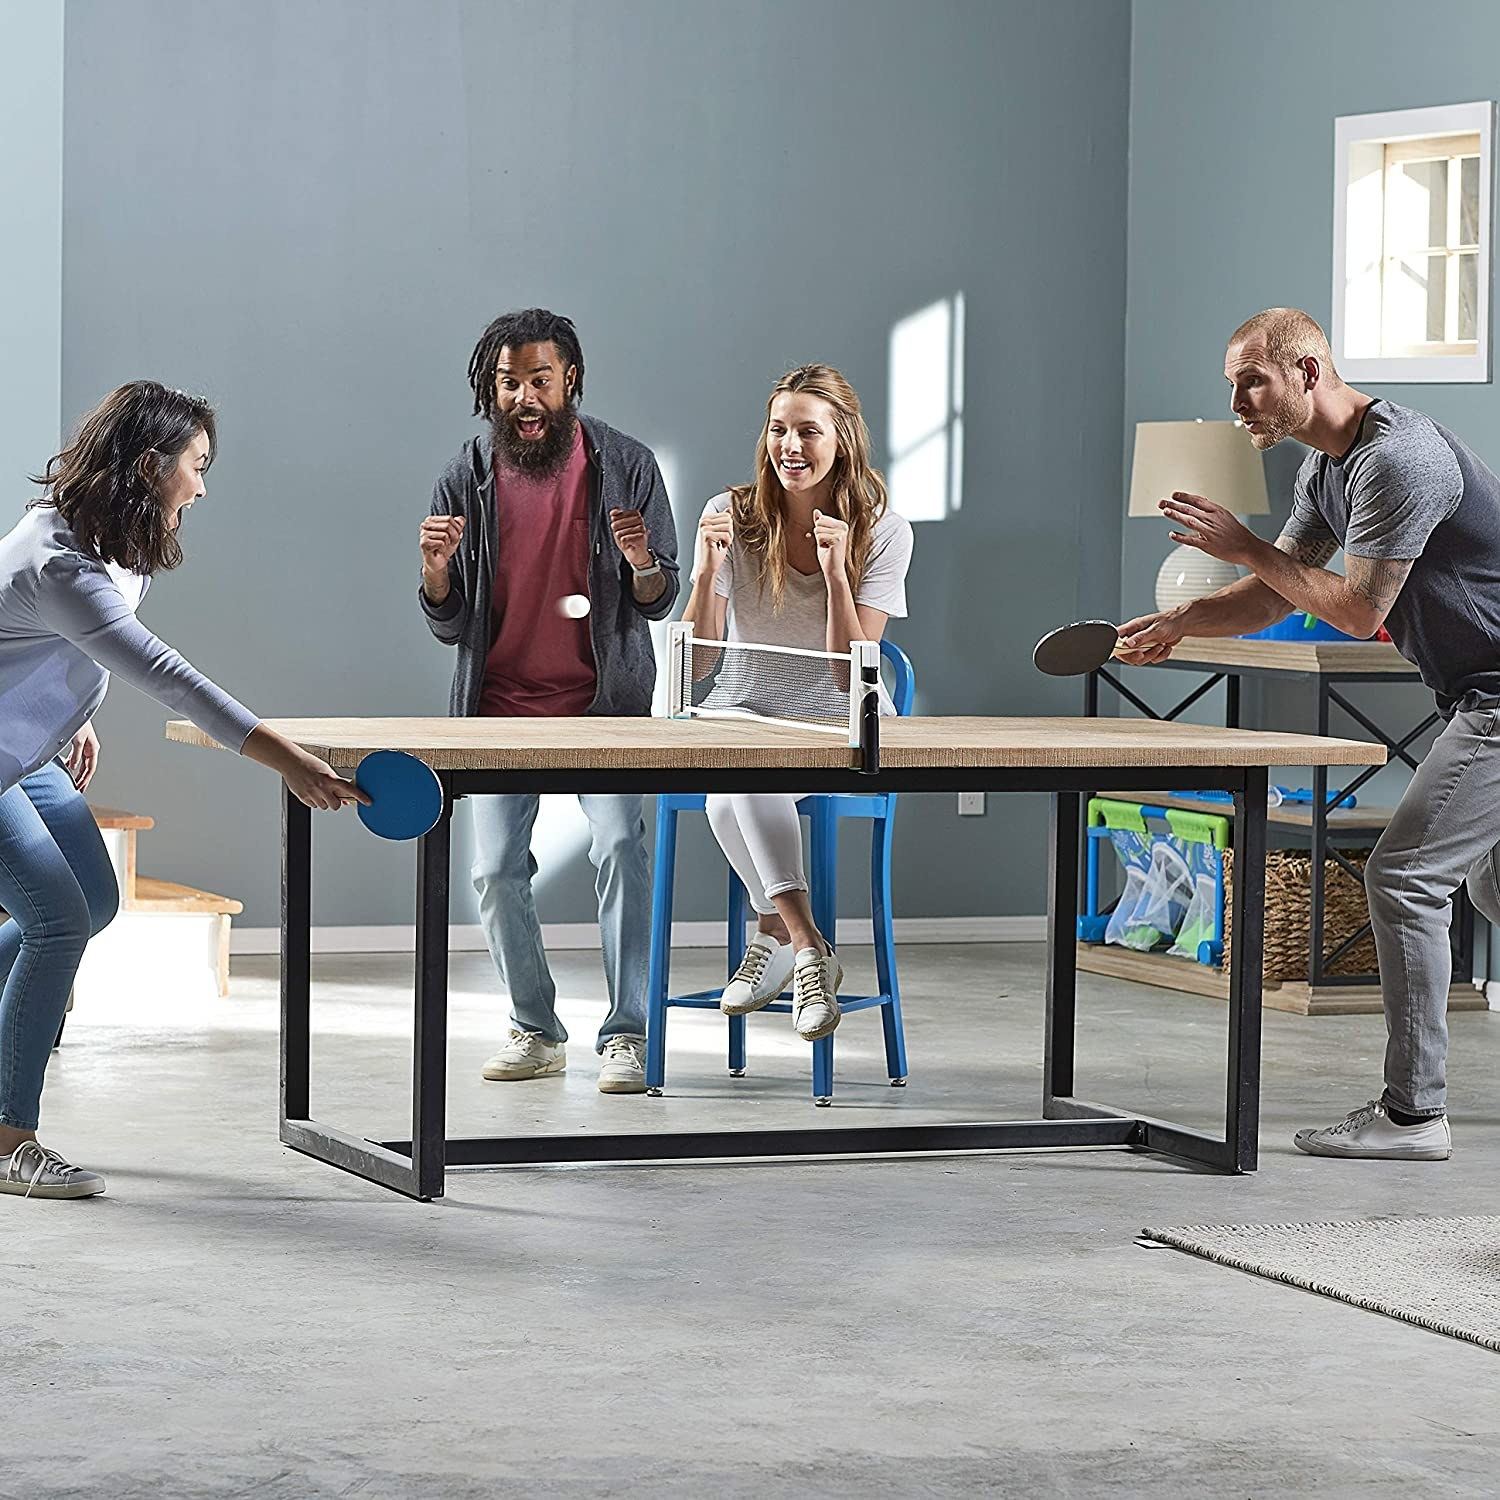 Models playing ping pong on a table with the net installed on it